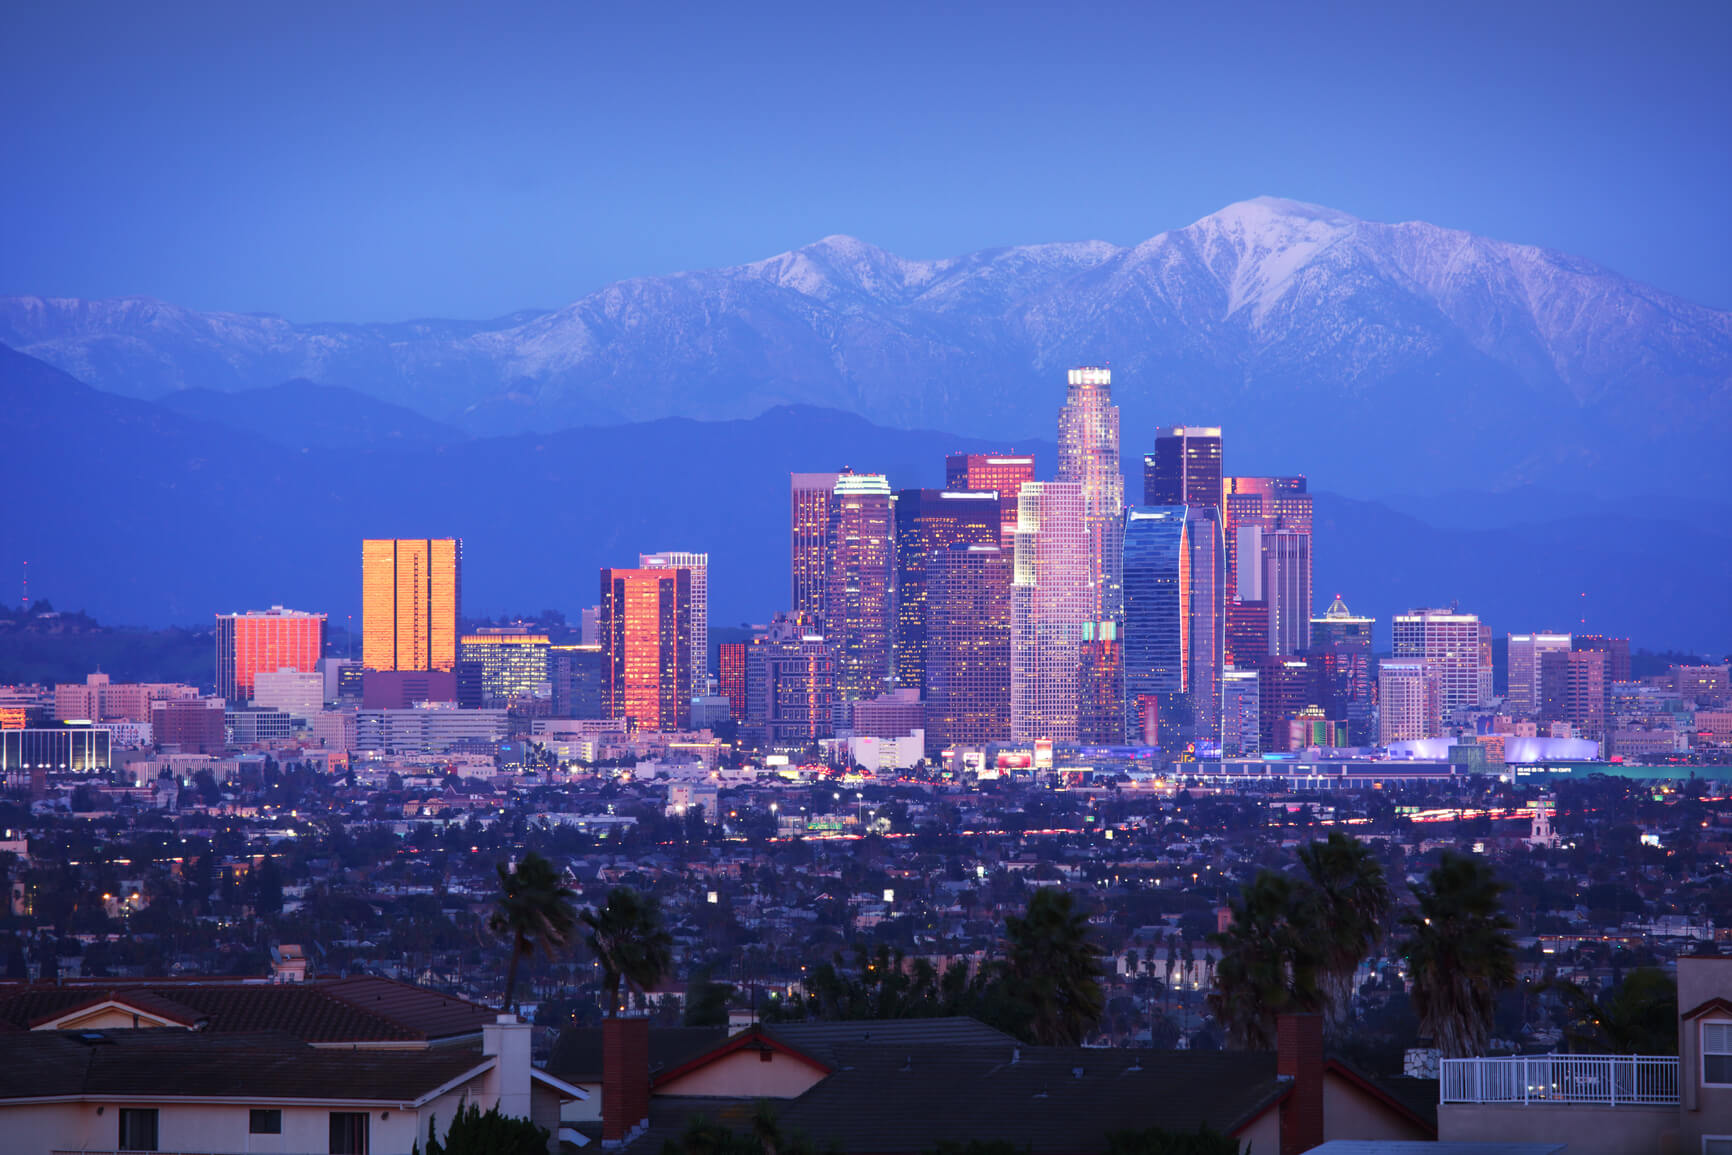 Hong Kong to Los Angeles, USA from only $352 USD roundtrip